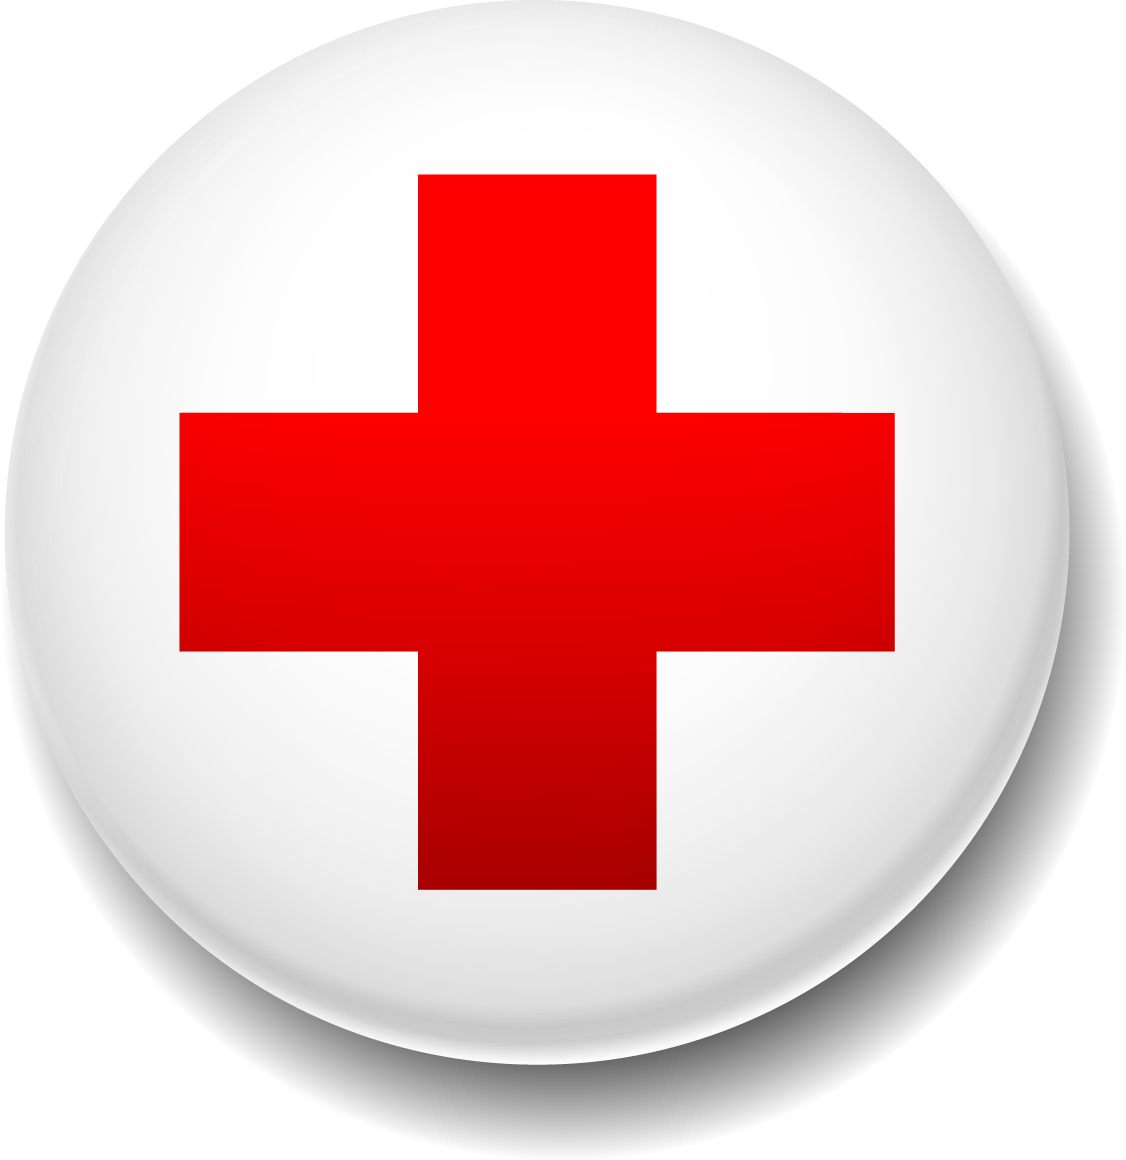 Red Cross clipart doctor appointment #6